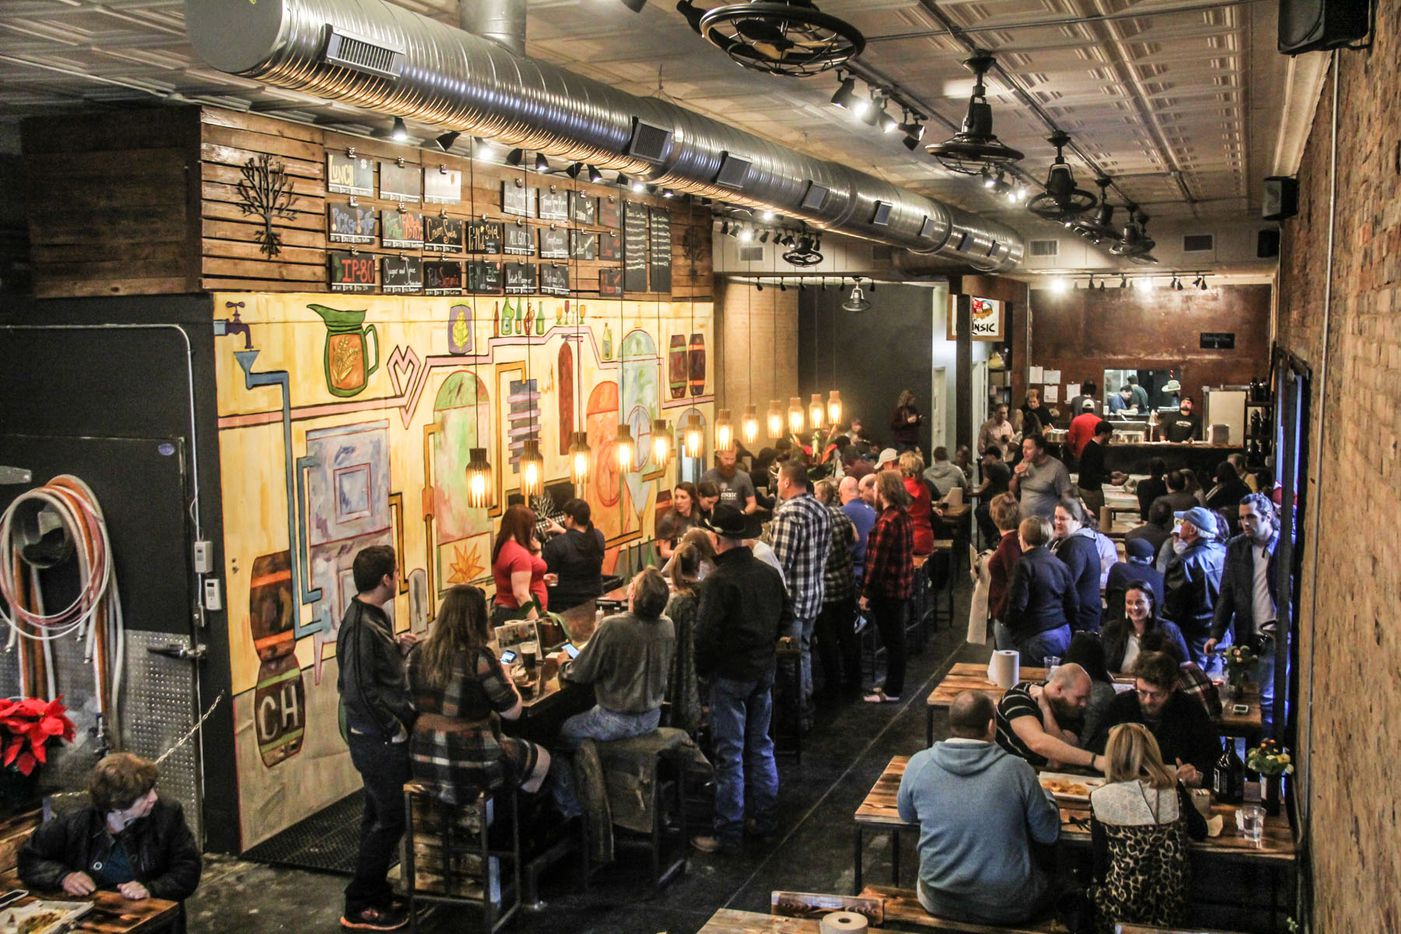 Intrinsic Smokehouse and Brewery on the square in Downtown Garland held it'€™s grand opening on December 5, 2015.